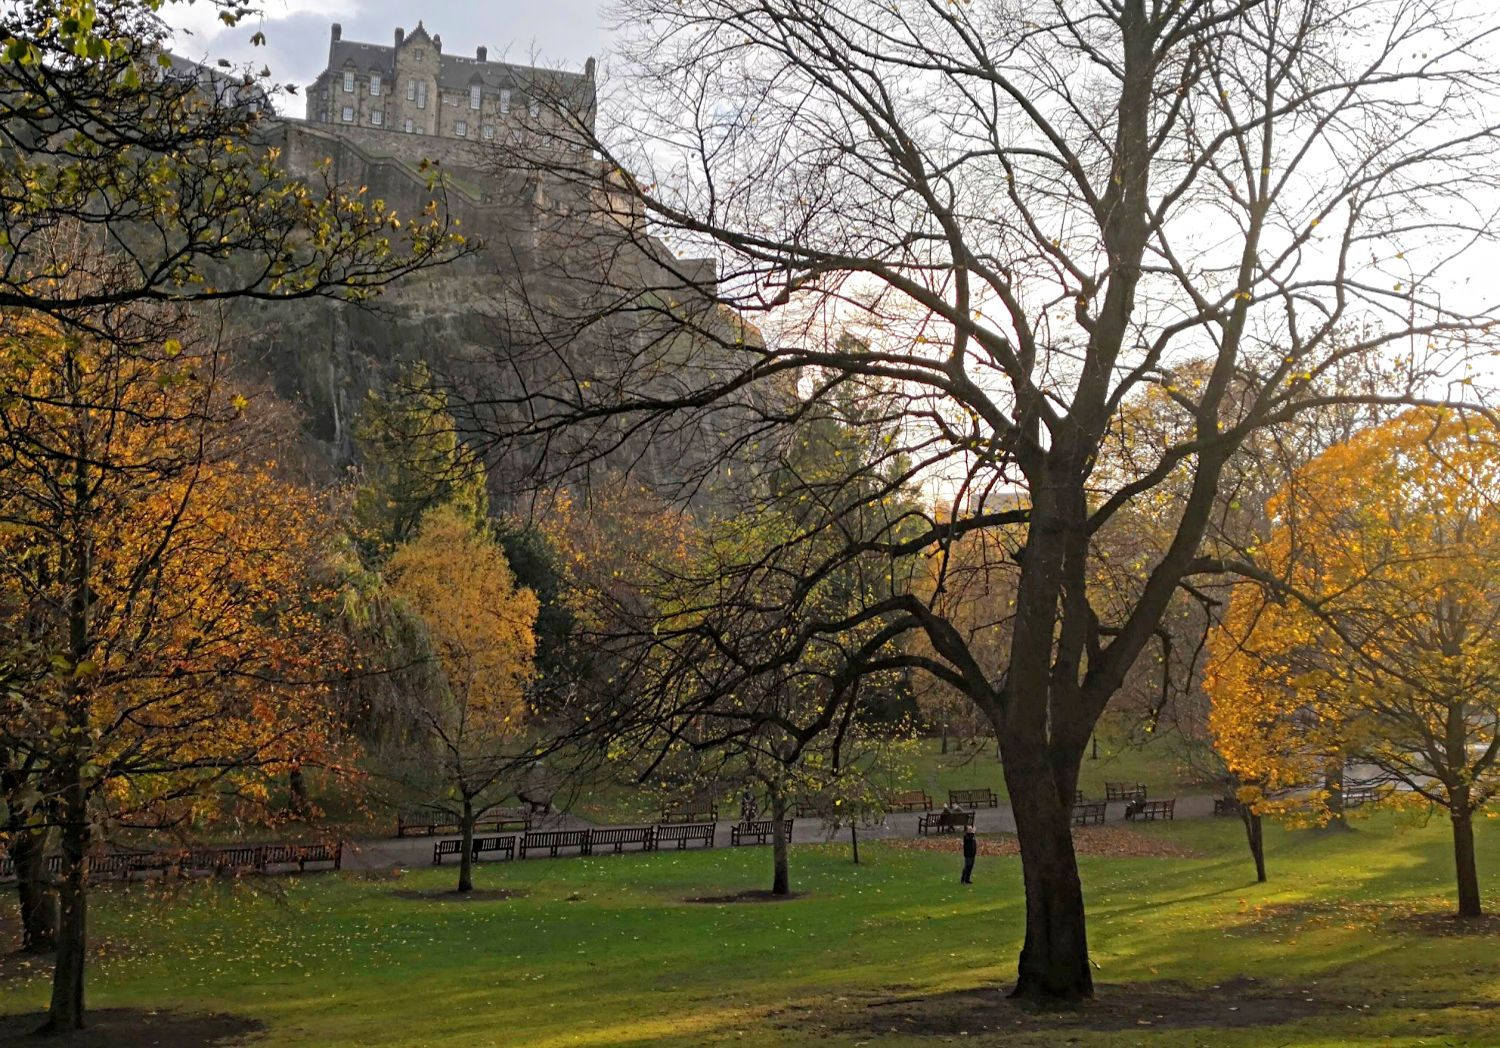 It's a lovely calm autumn day in Princes Street Gardens, Edinburgh. Even in November you can chance upon weather that's ideal for exploring the city.